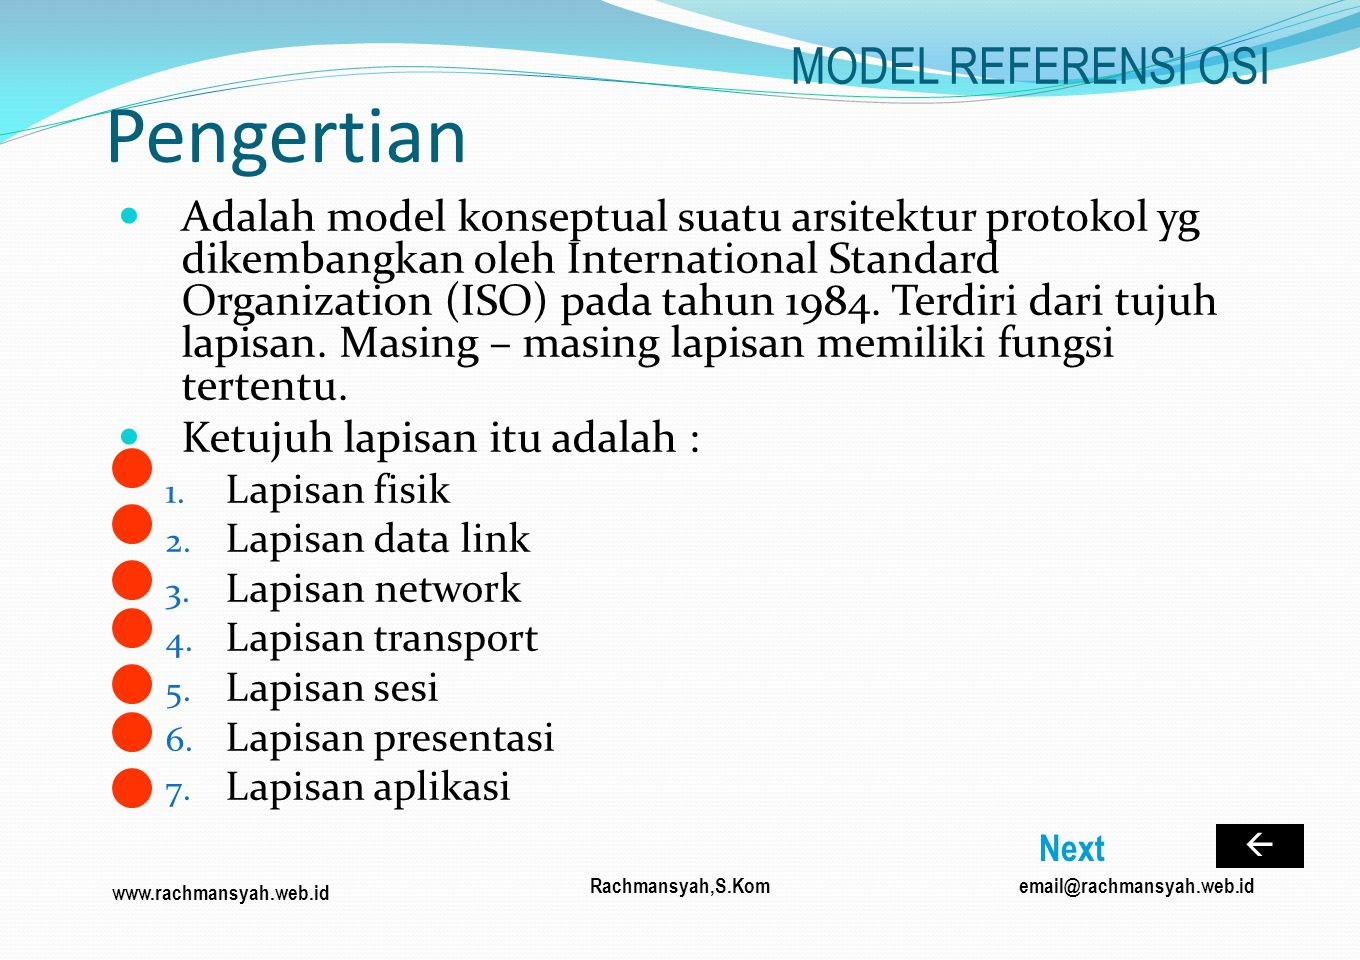 Pengertian MODEL REFERENSI OSI